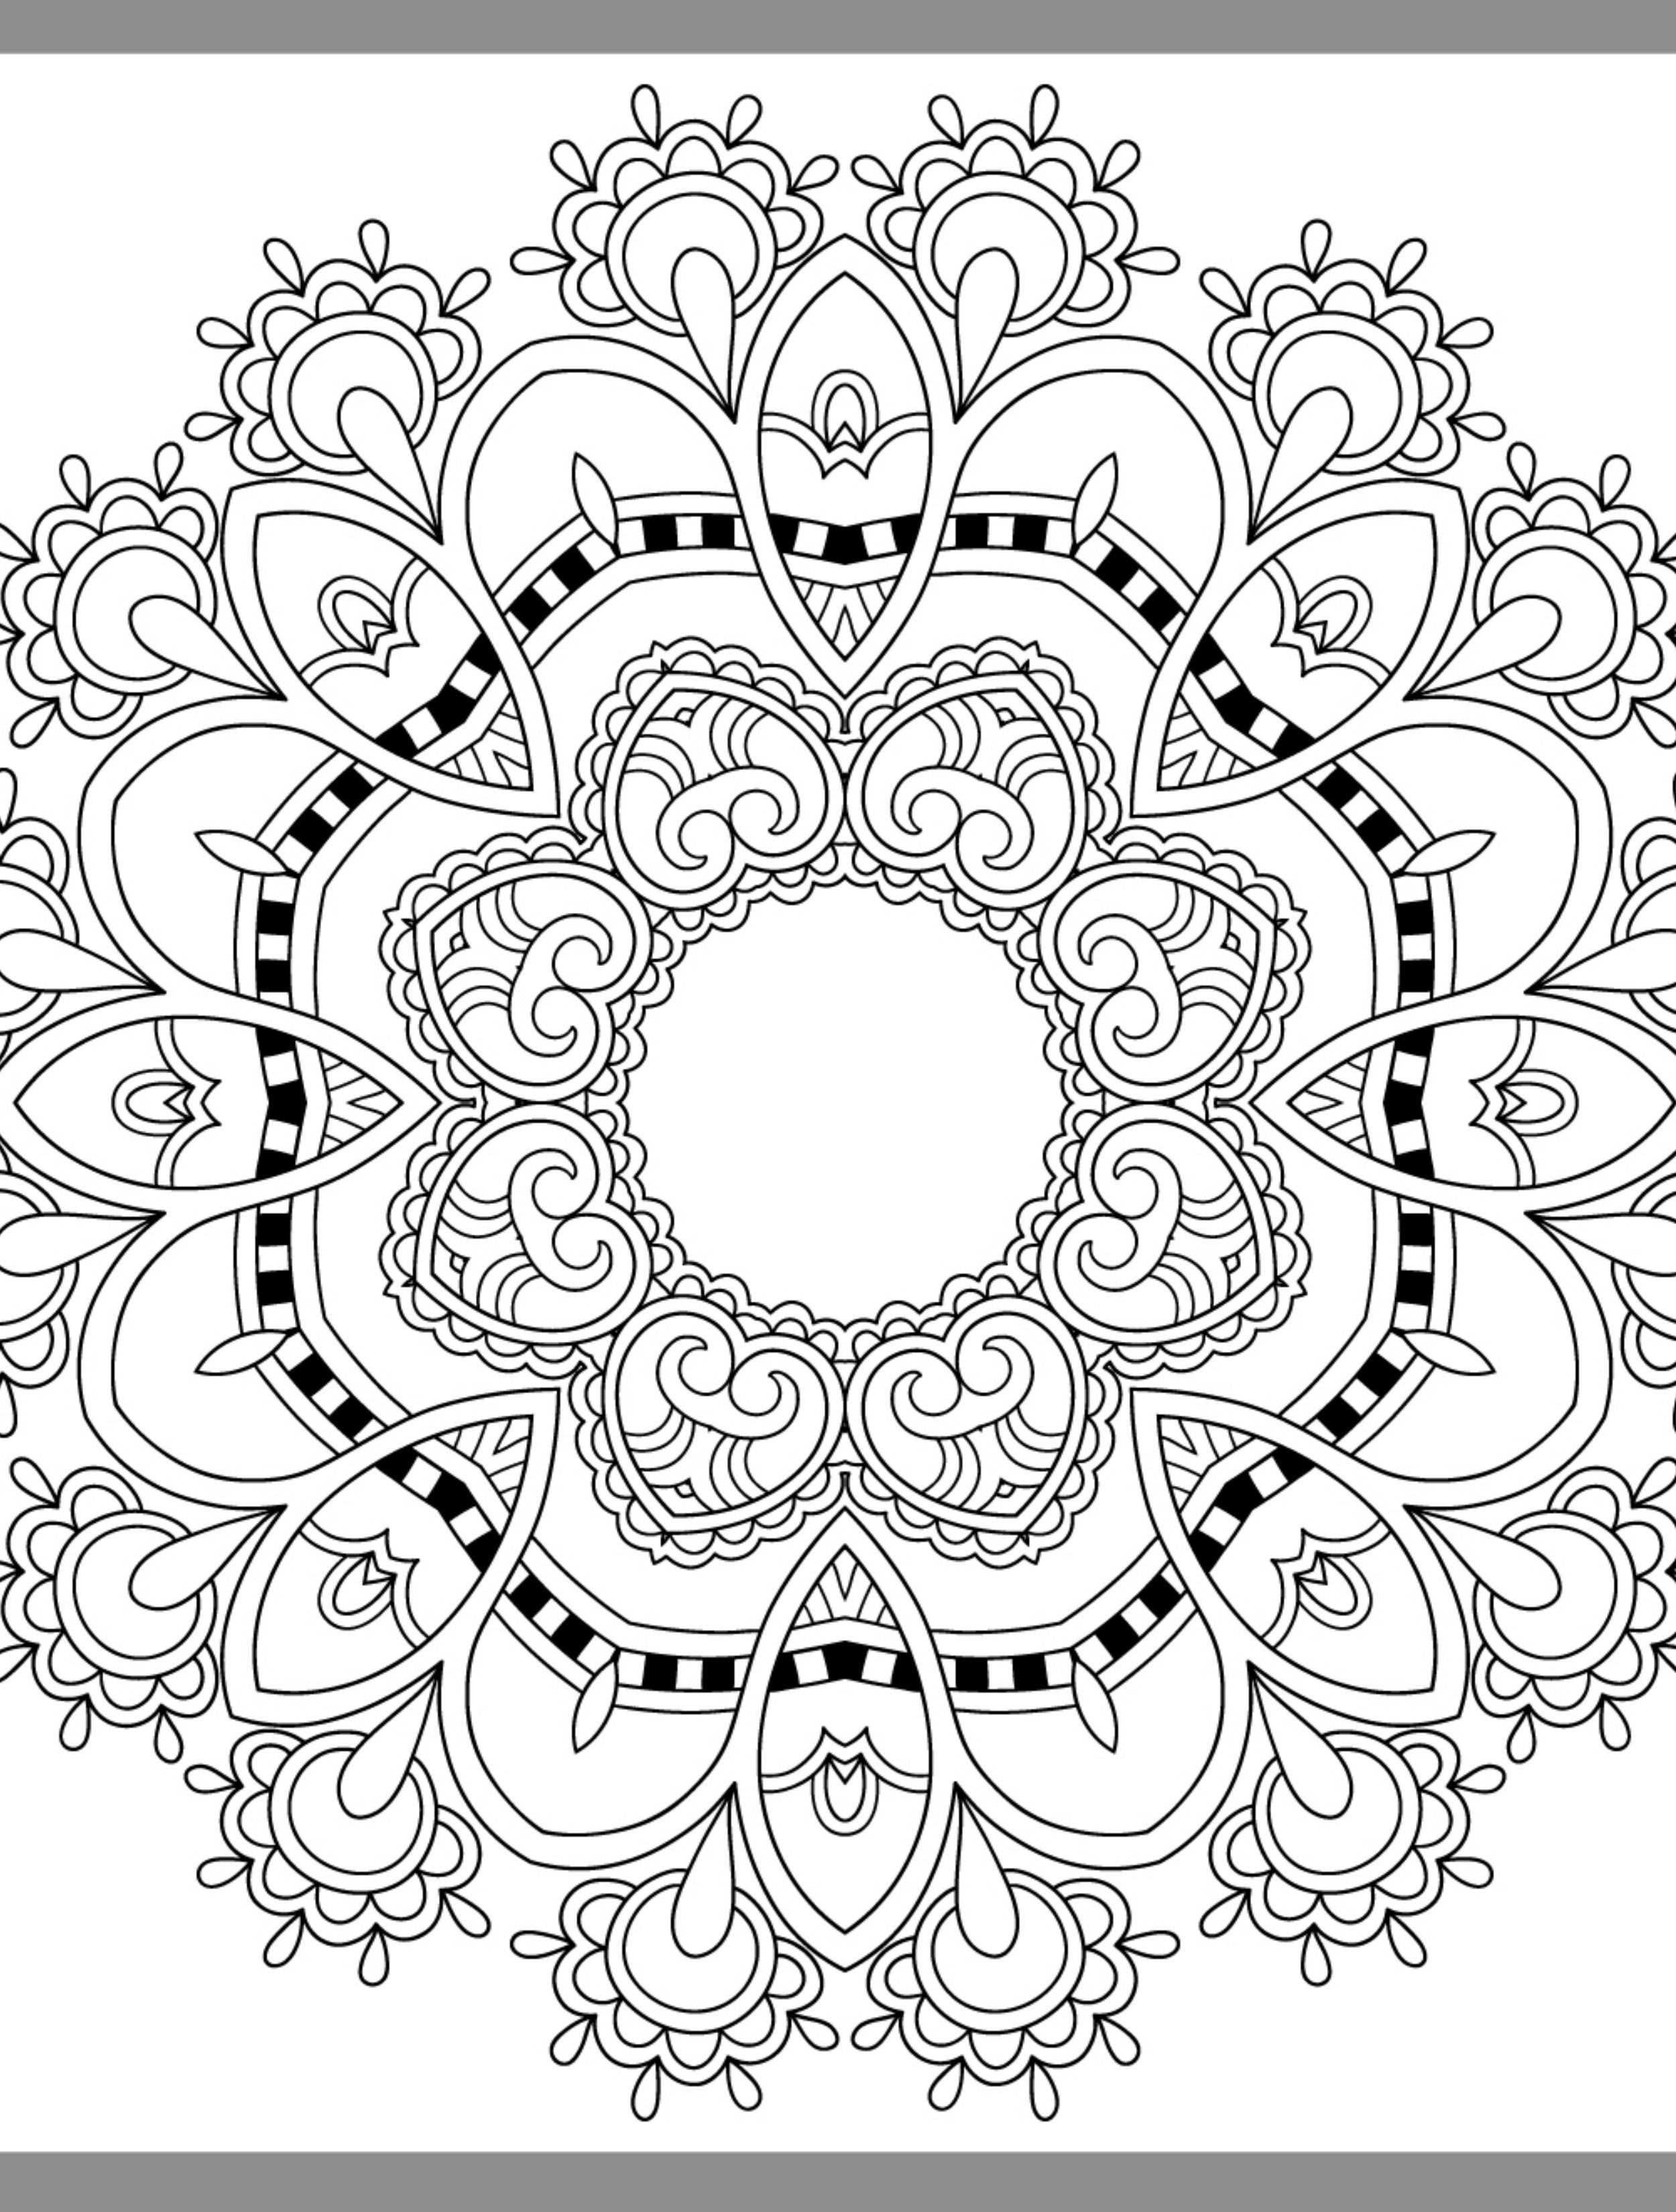 coloring pages for tweens cute coloring pages for teenagers coloring home tweens for pages coloring